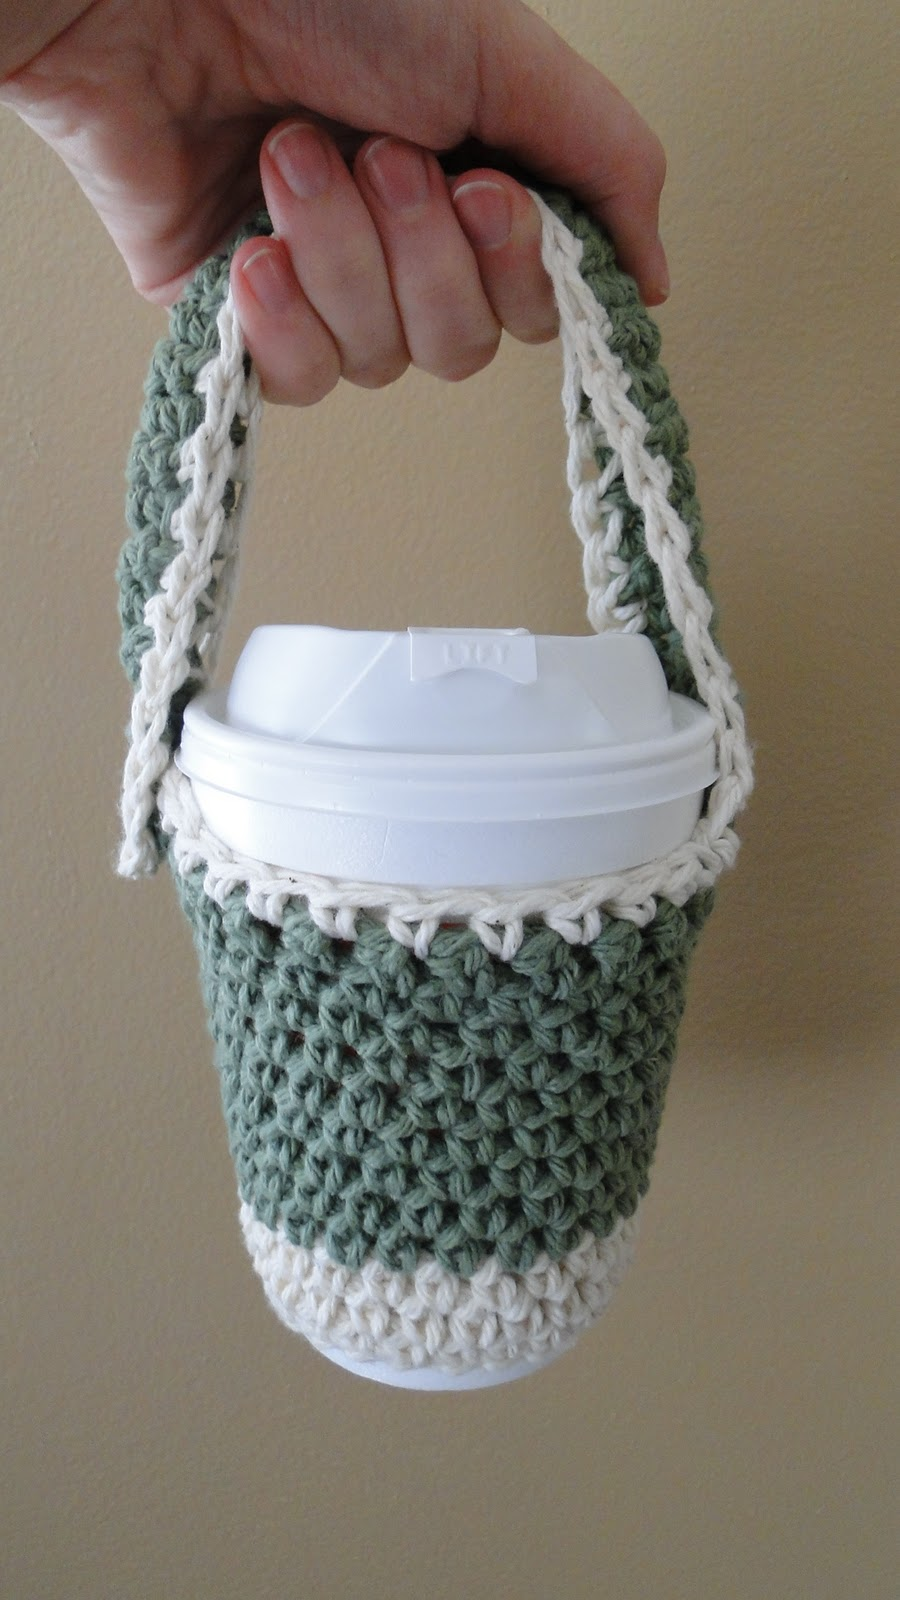 Ruby Knits: Free Pattern Friday is BACK - Crochet To Go Cup Holder